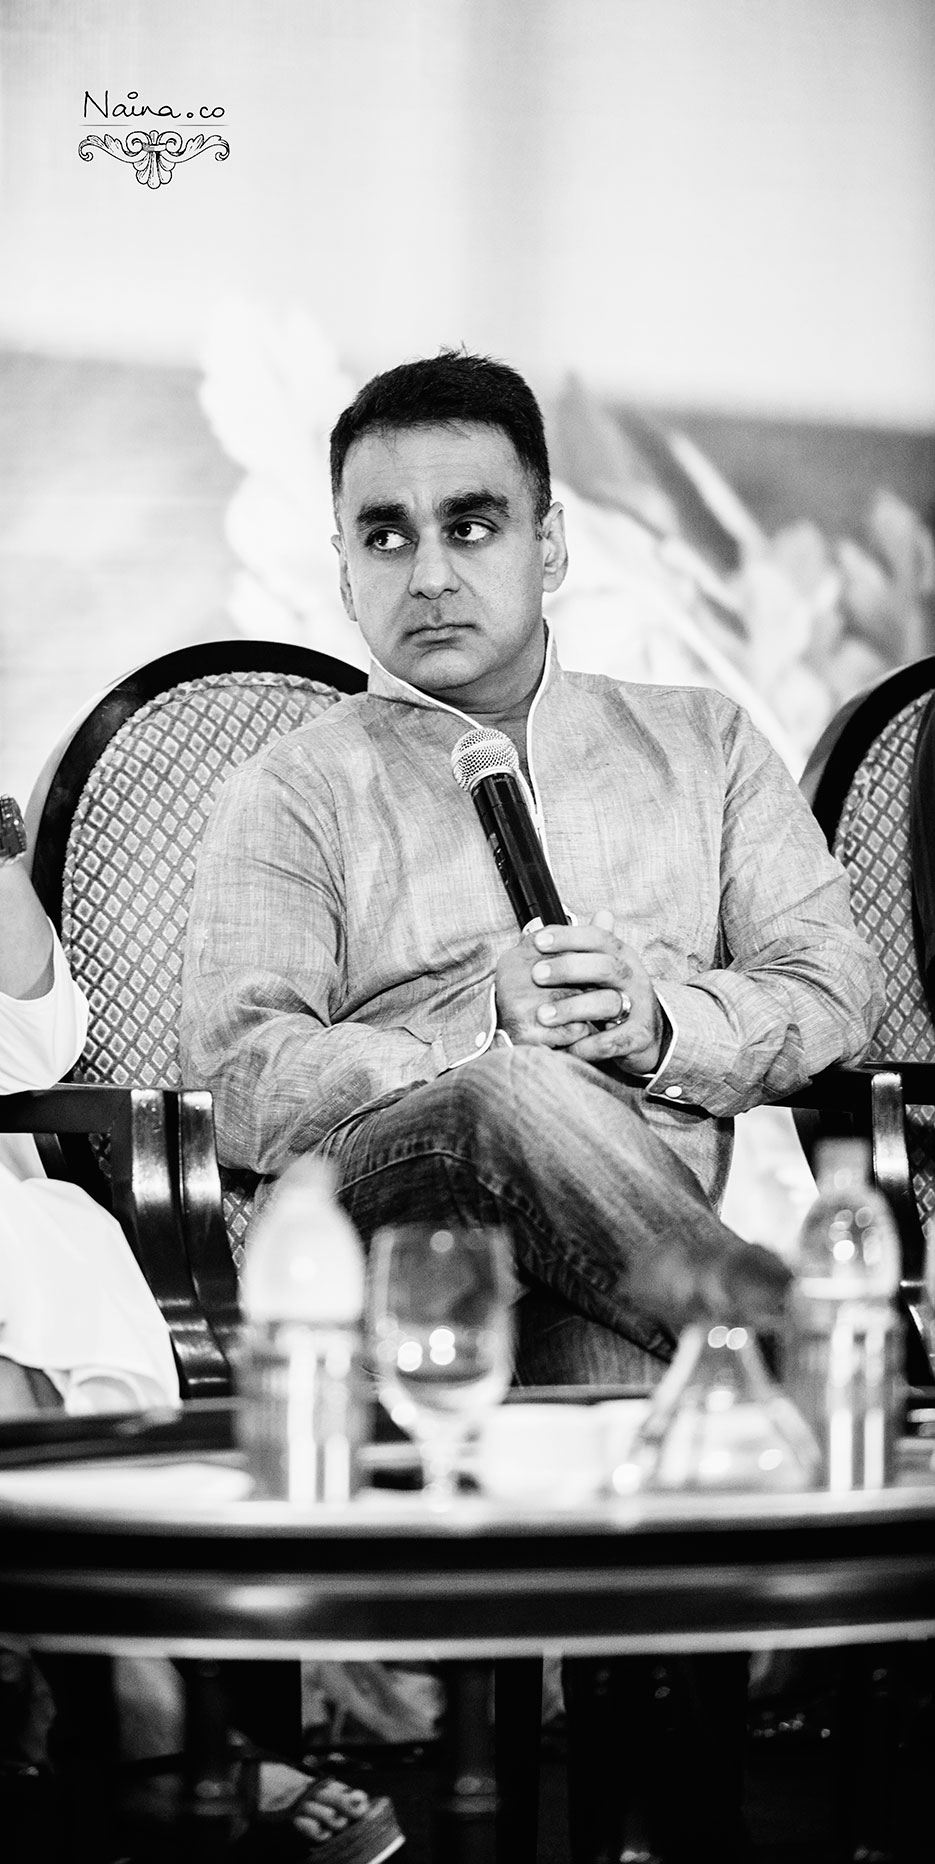 Chef Vineet Bhatia of Rasoi at the CSSG Gastronomy Summit, 2012 photographed by photographer Naina Redhu of Naina.co